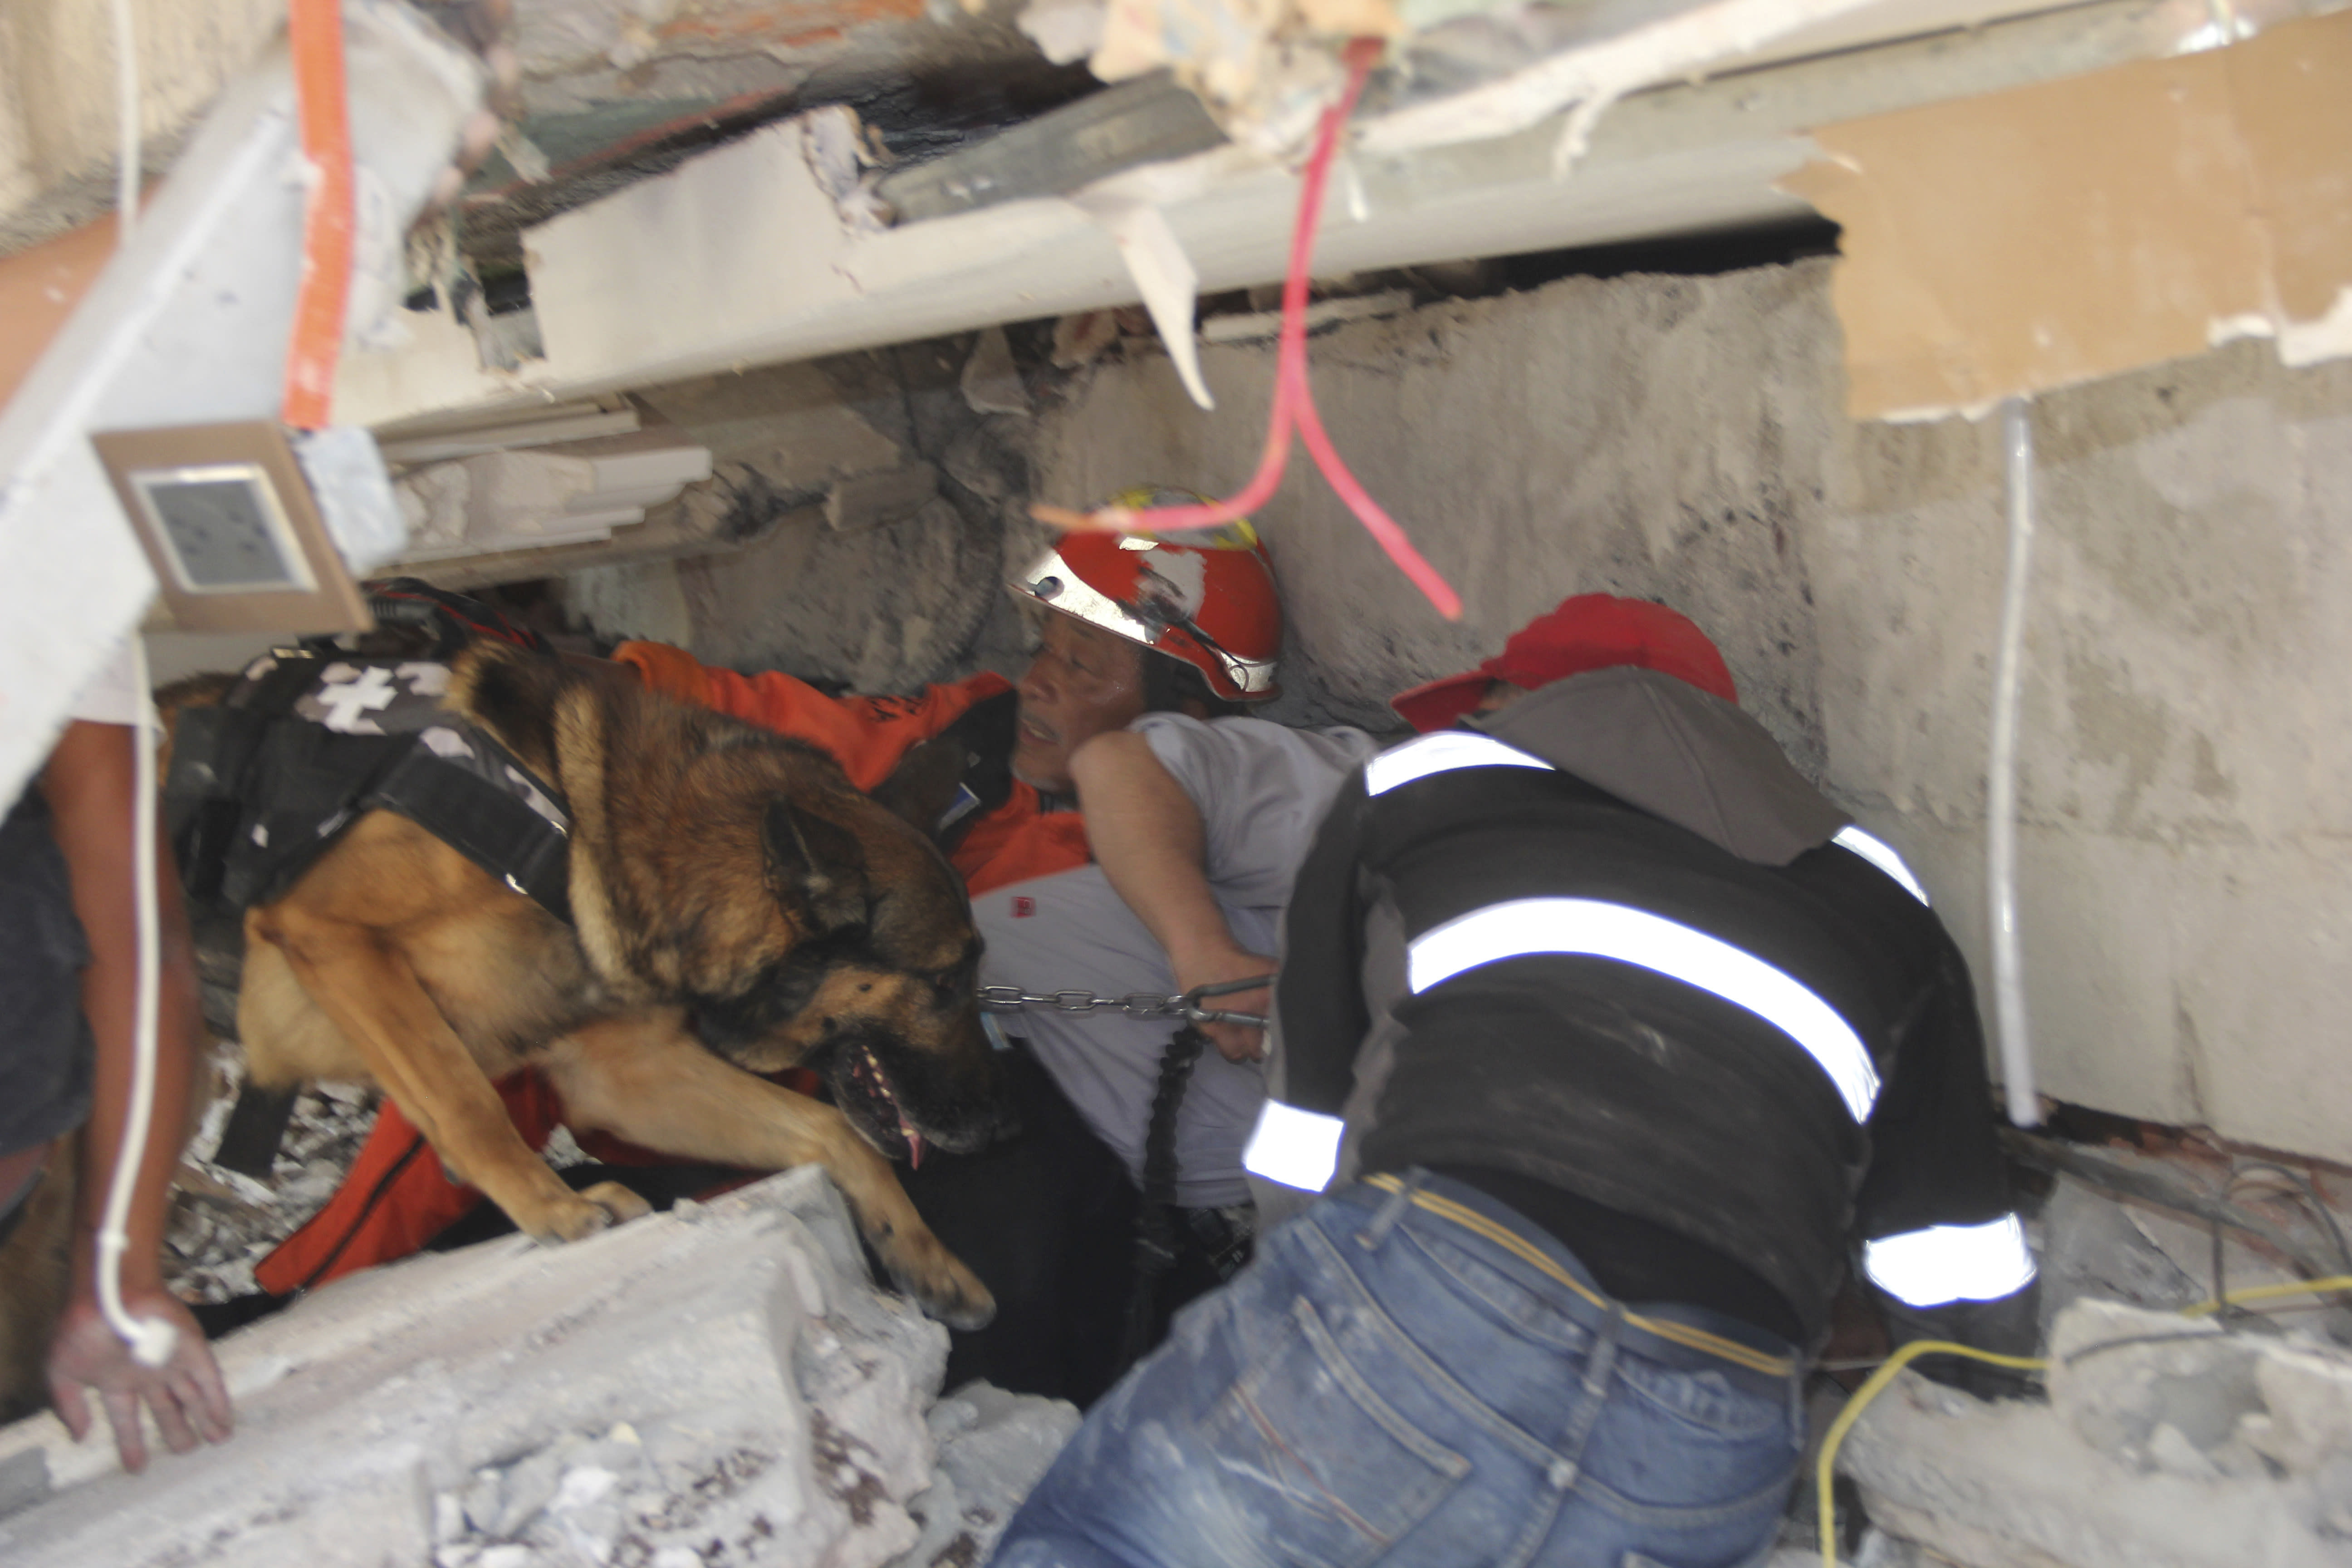 <p>Rescue workers and a trained dog search for children trapped inside the collapsed Enrique Rebsamen school in the Coapa area of Tlalpan, Mexico City, on Sept. 19, 2017. (Photo: Carlos Cisneros/AP) </p>